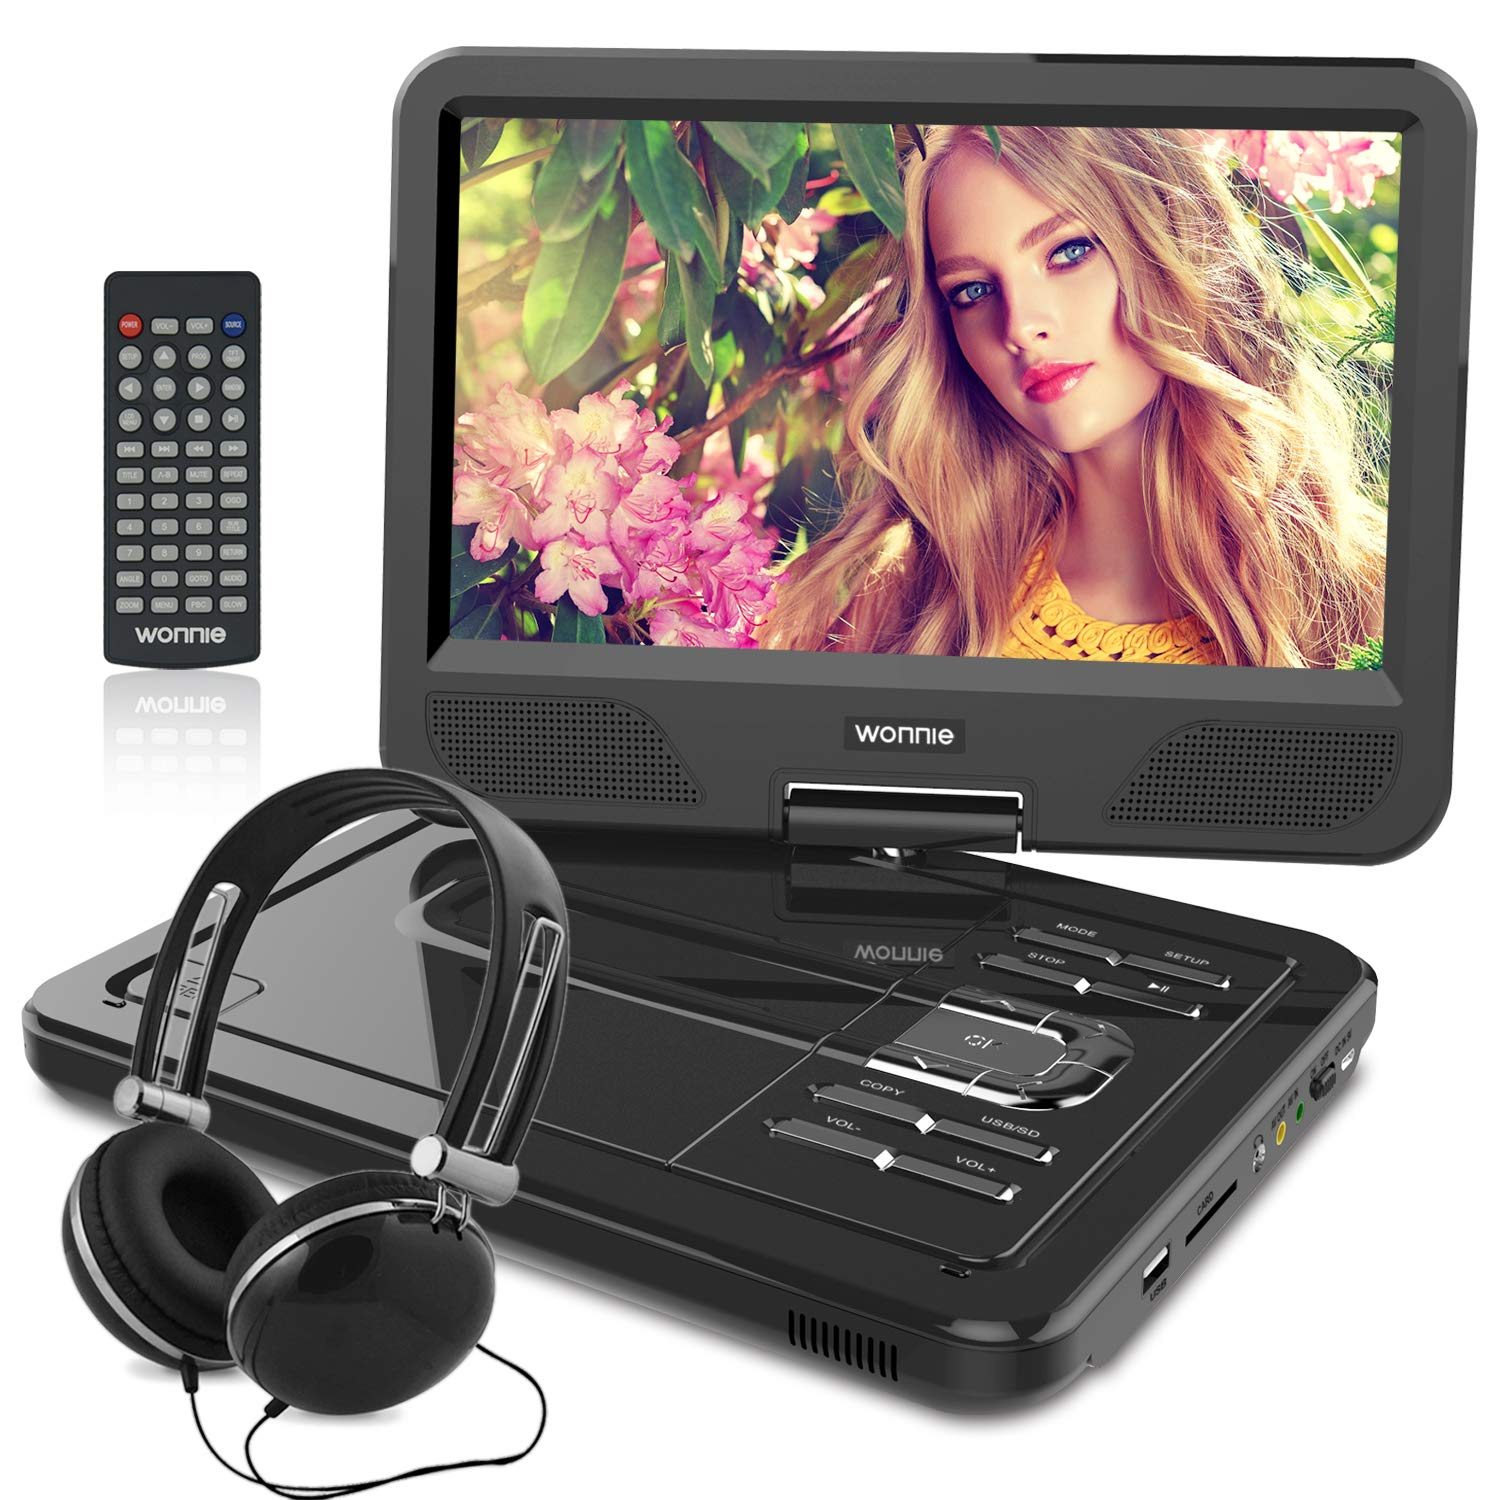 WONNIE 12.5 Inch Portable DVD Player for Car, with Rechargeable Battery, 10.5'' Swivel Screen, SD Card Slot and USB Port, Gift for Kid and Senior Citizens(Black)